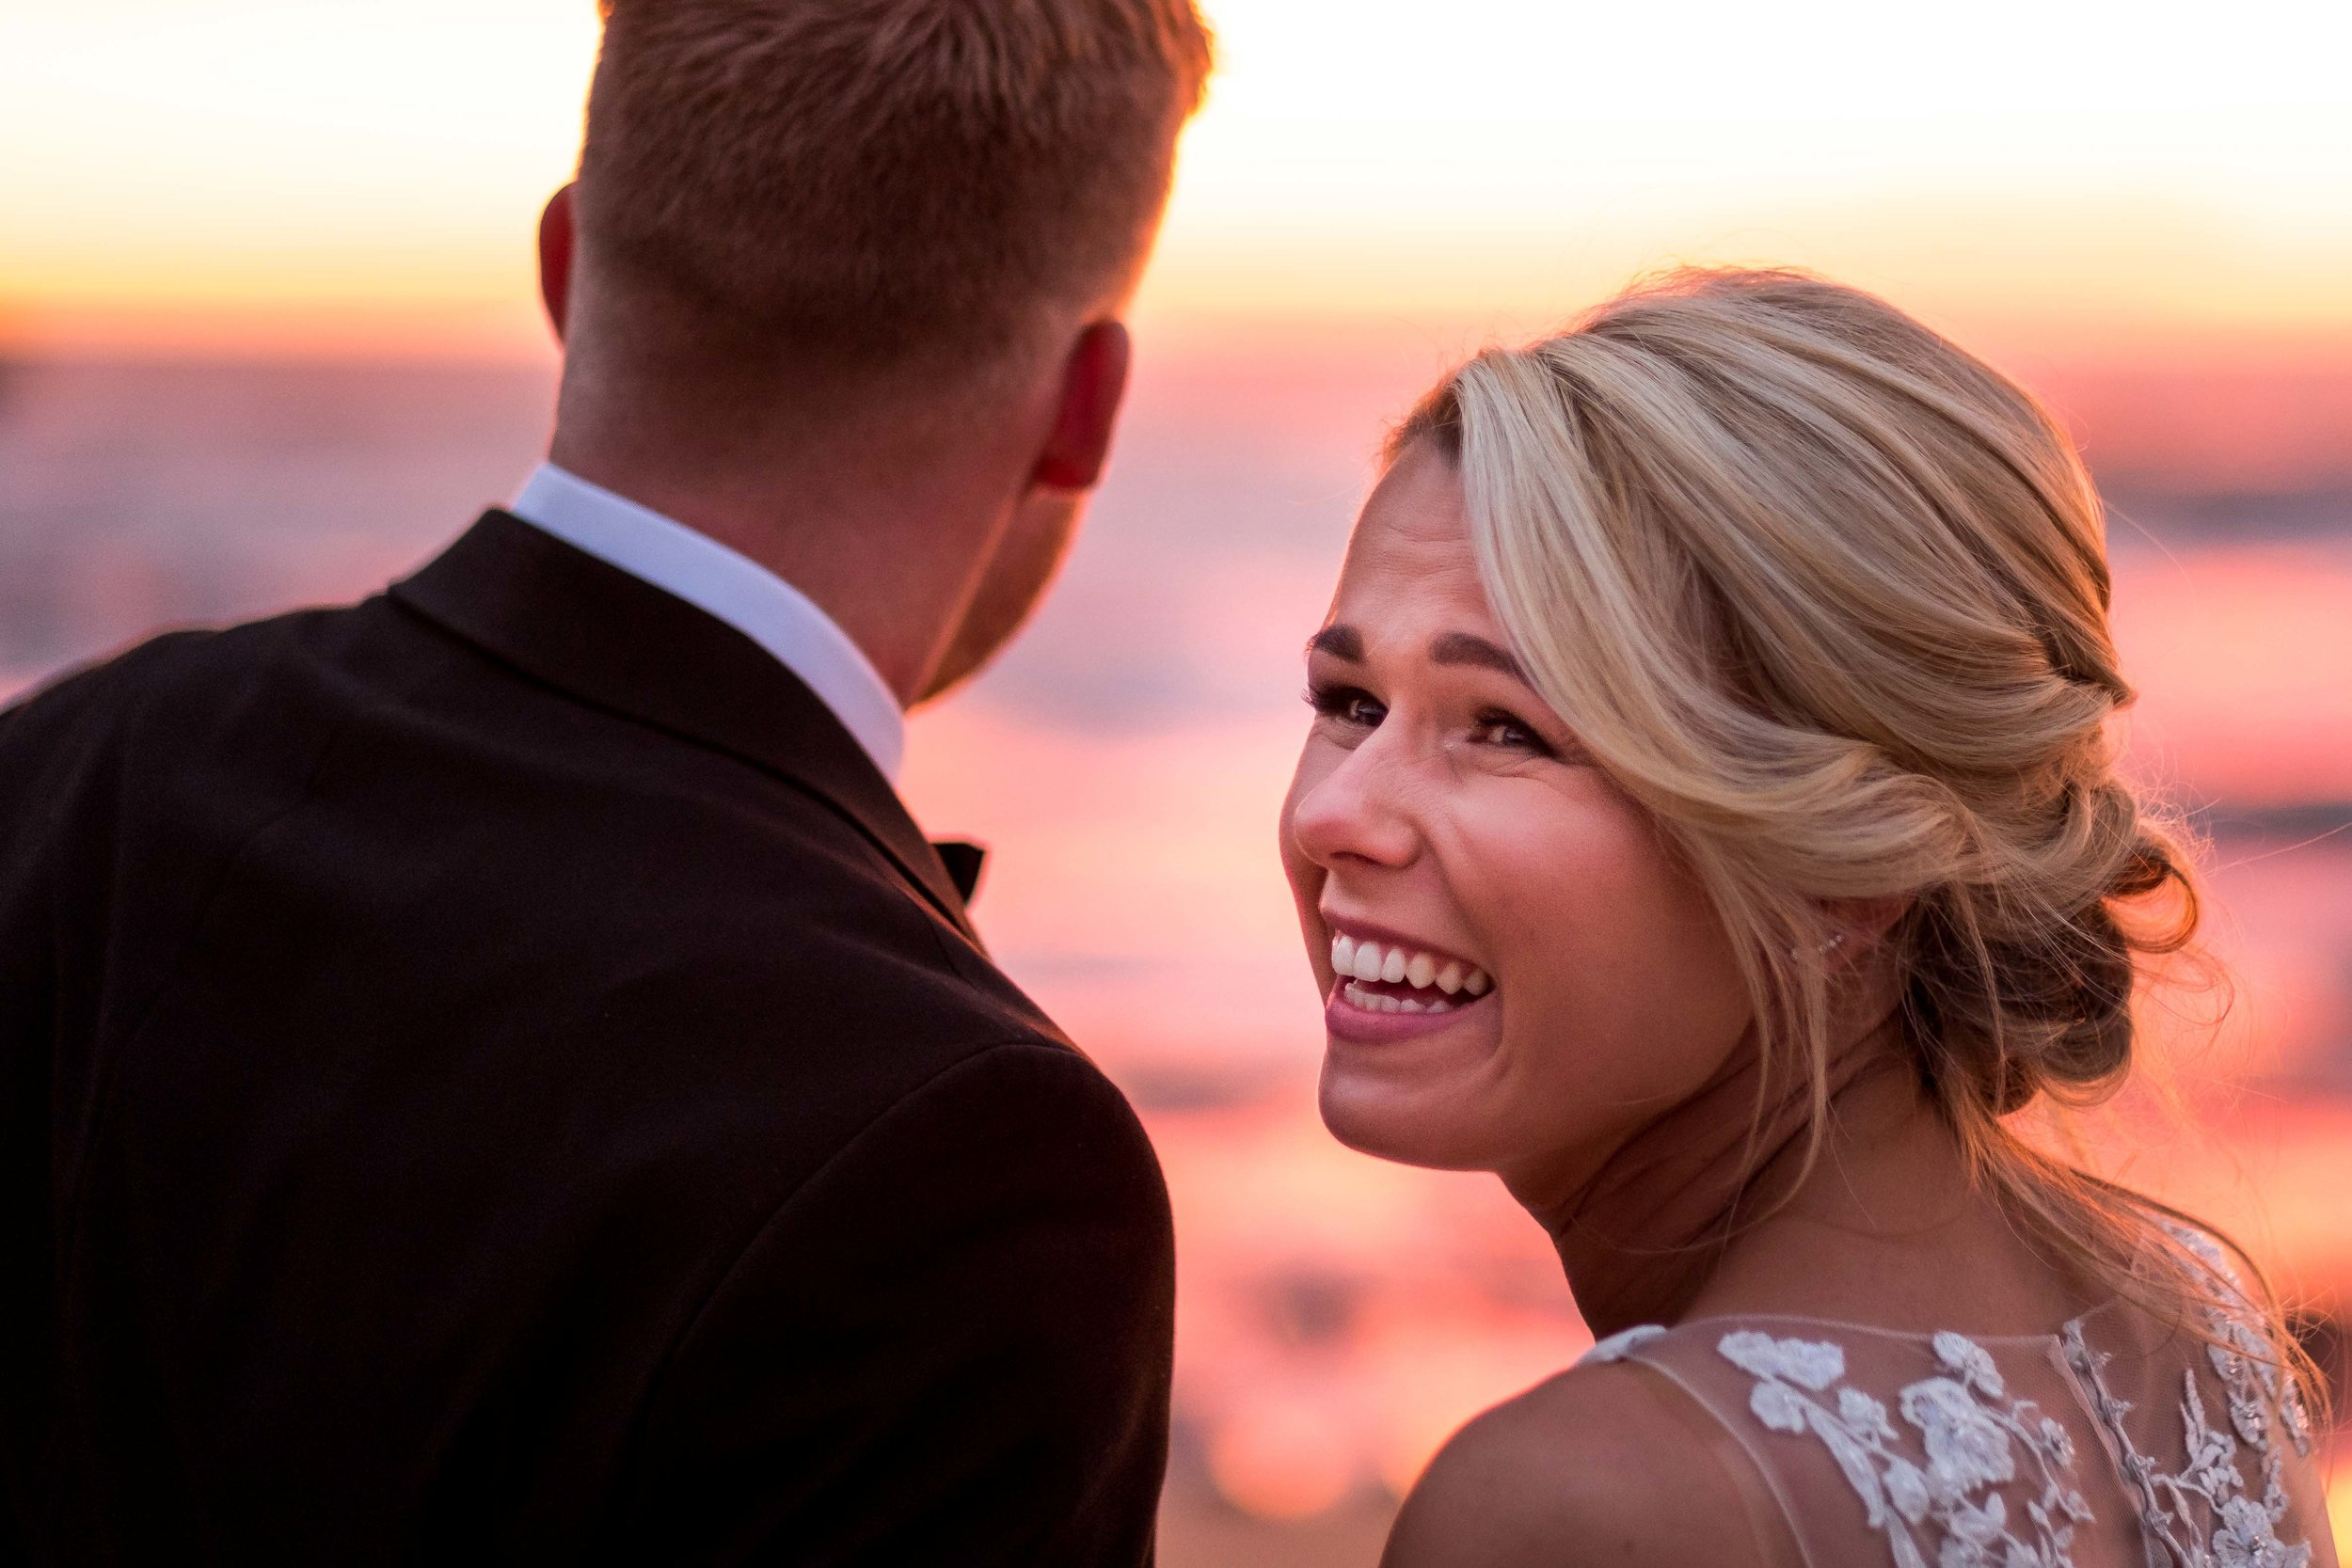 Natural and un-posed photograph of Bride laughing on the beach at Sunset on her wedding day